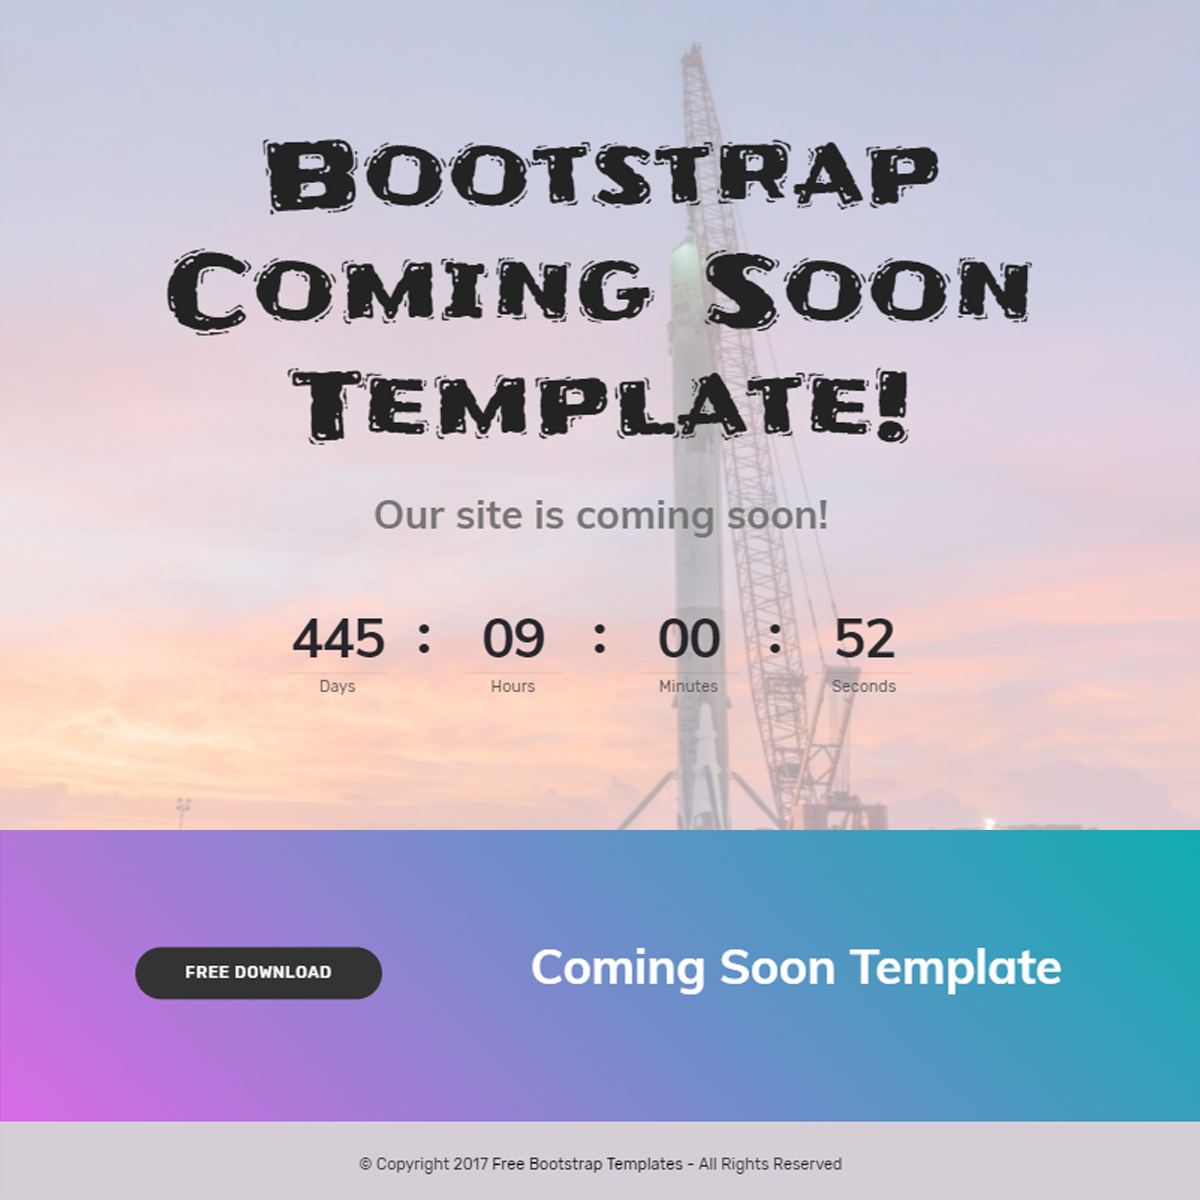 Bootstrap Coming Soon Template